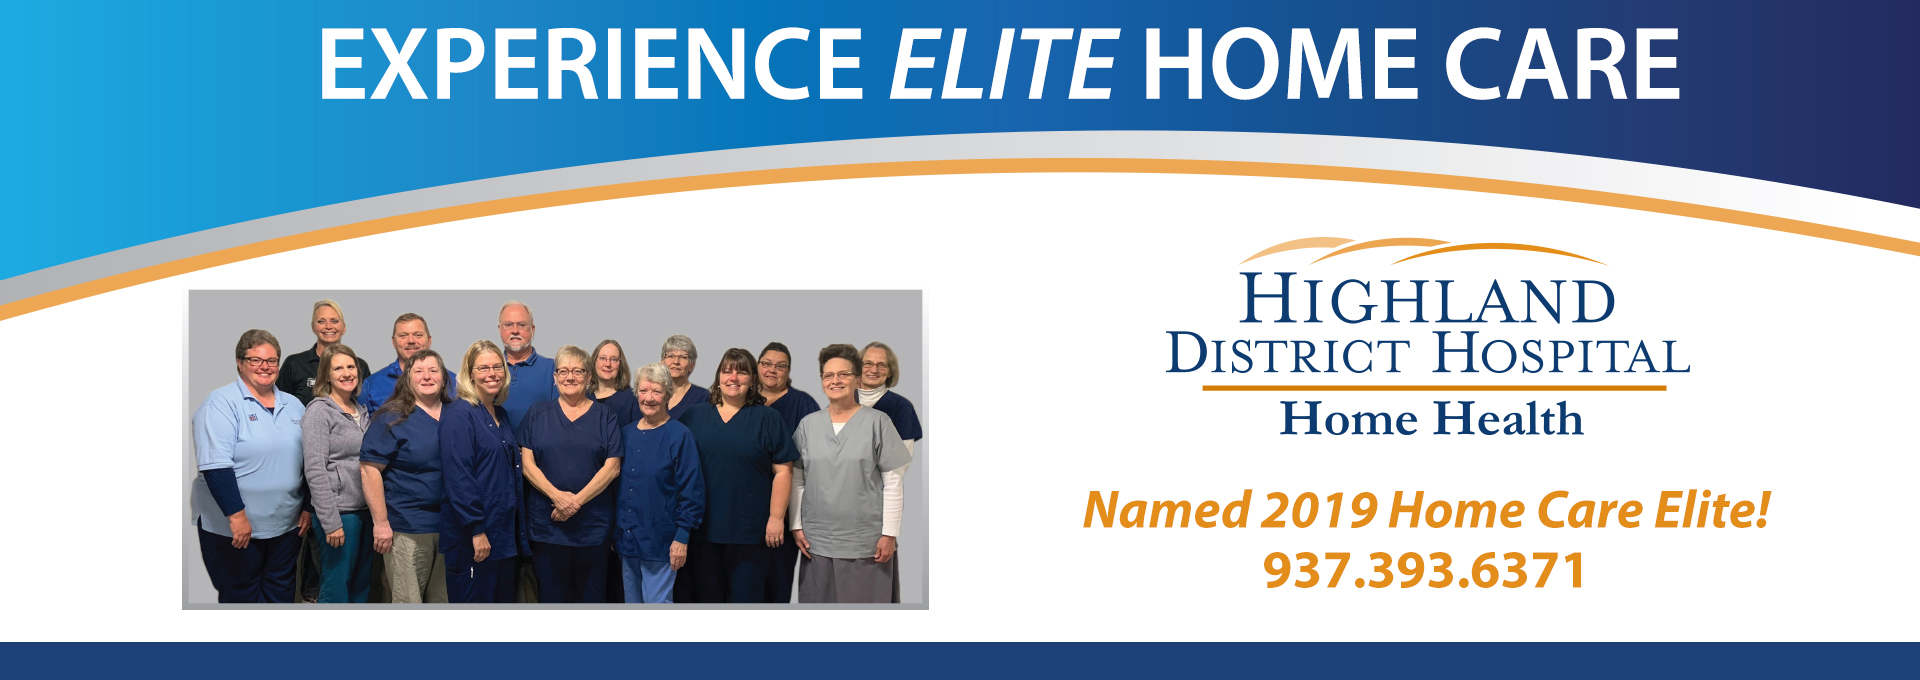 Experience Elite Home Care HDH banner